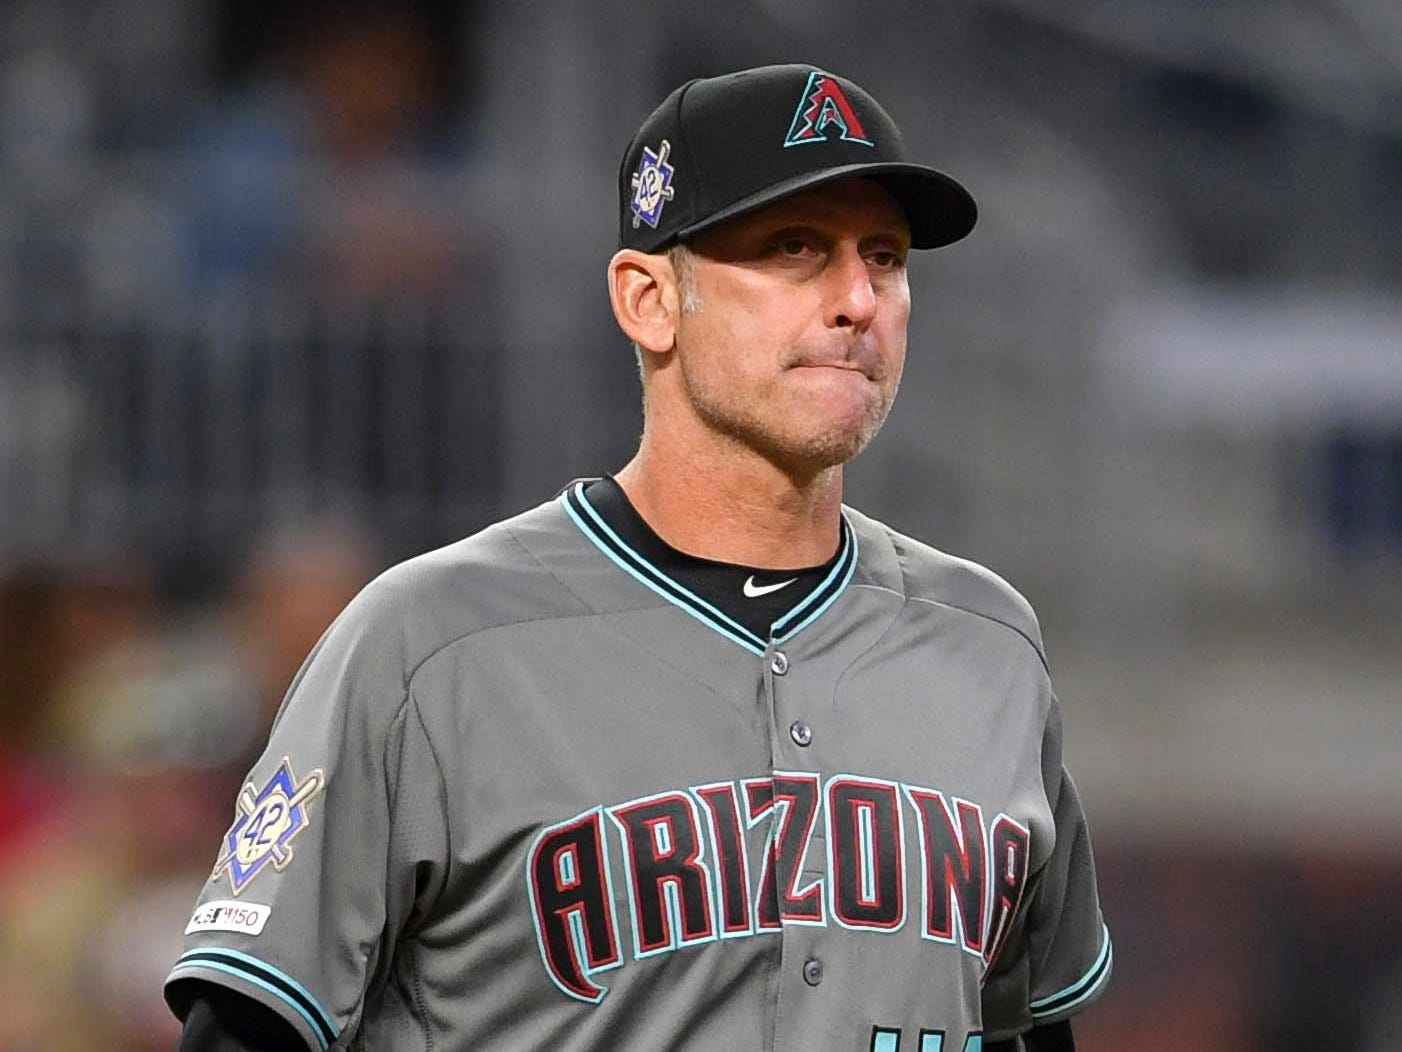 Apr 16, 2019; Atlanta, GA, USA; Arizona Diamondbacks manager Torey Lovullo (17) walks to the mound to change pitchers against the Atlanta Braves during the seventh inning at SunTrust Park. Mandatory Credit: Dale Zanine-USA TODAY Sports